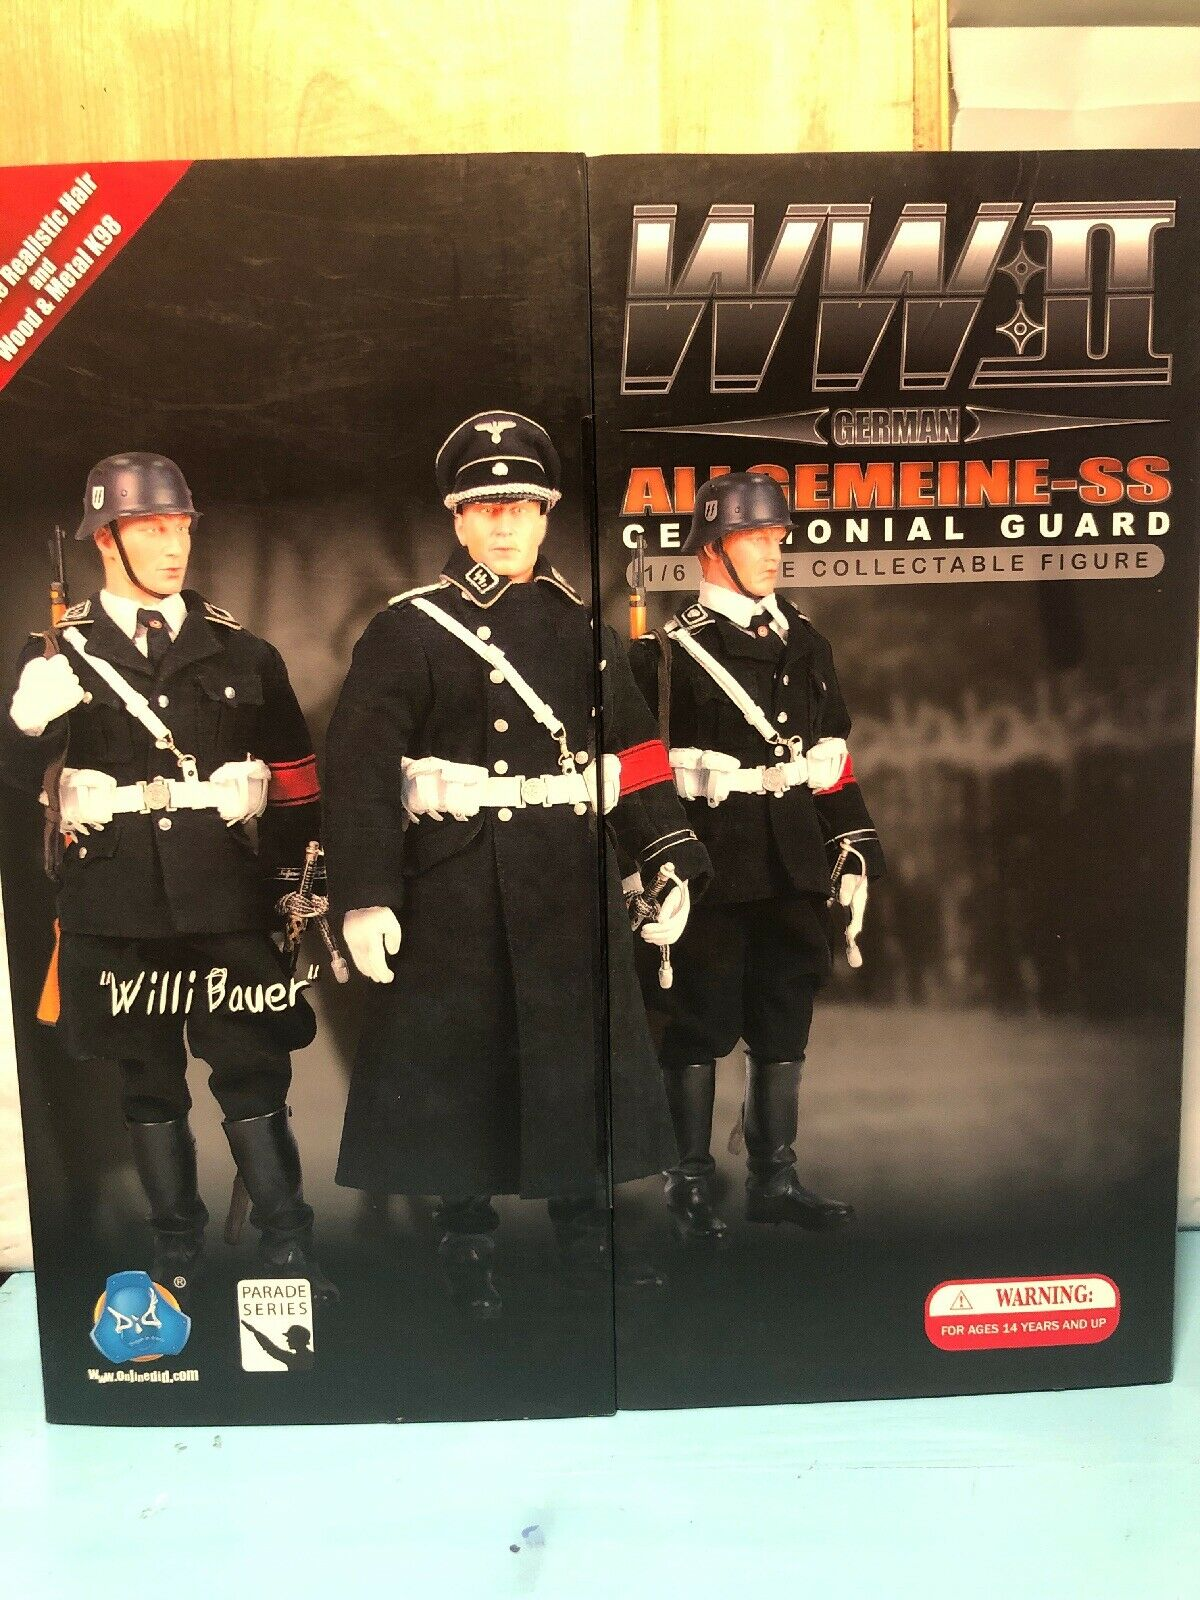 WWII ALLGEMEINE SS CEREMONIAL GUARD 1 6 Scale Willie Bauer